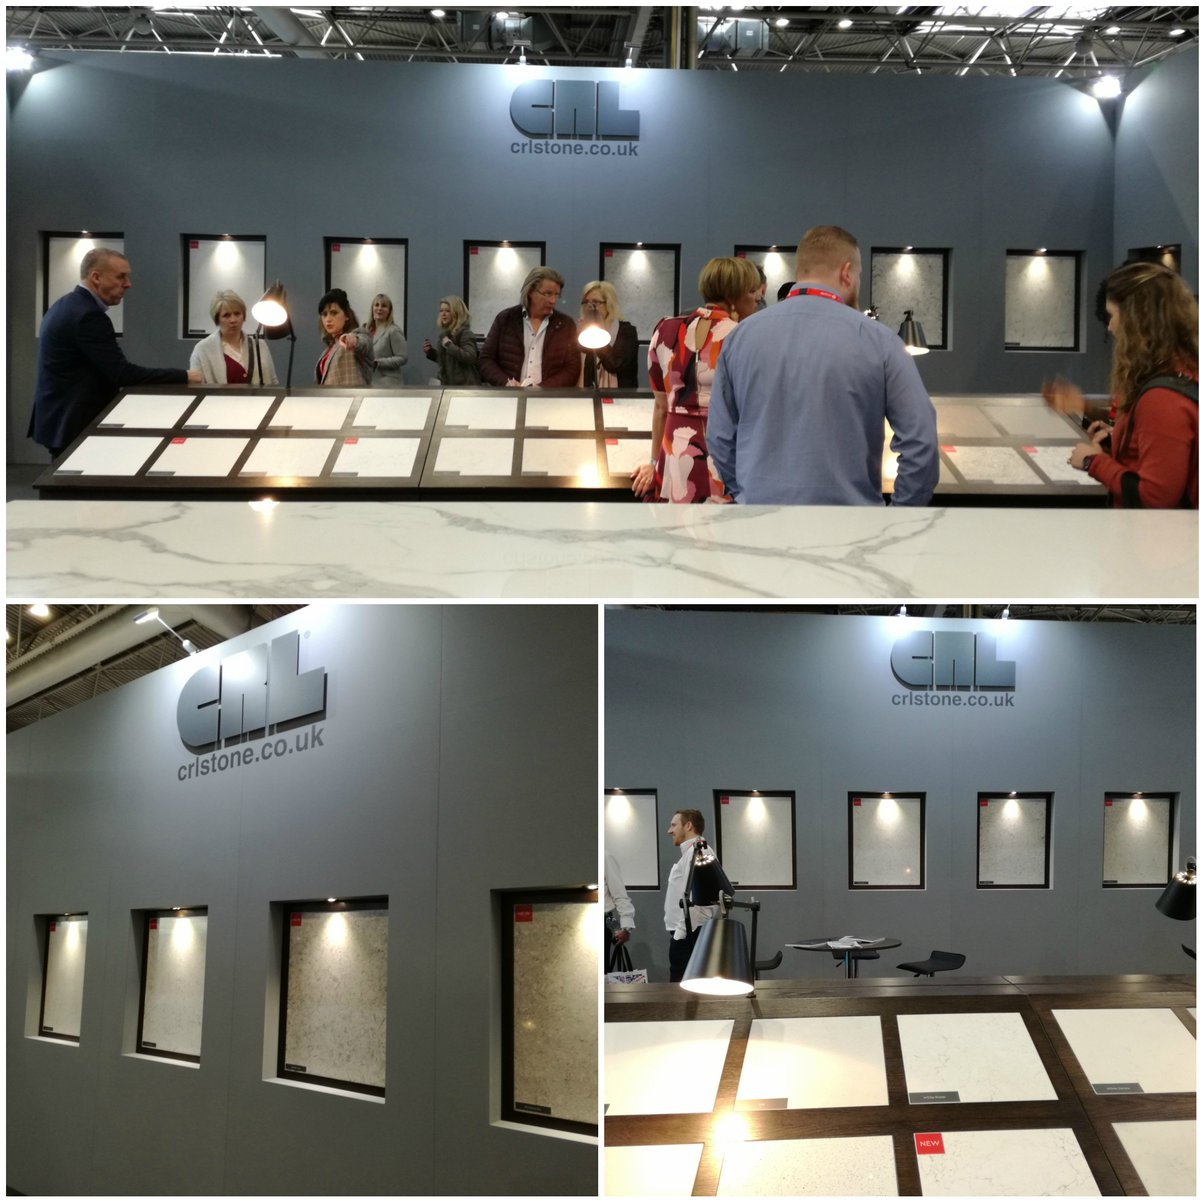 We're delighted to see how well our new colours have been received @kbblive this week. If you've not seen our stand F85 yet then you still have this afternoon to come and see them for yourself! #kbb2018 #kbblive